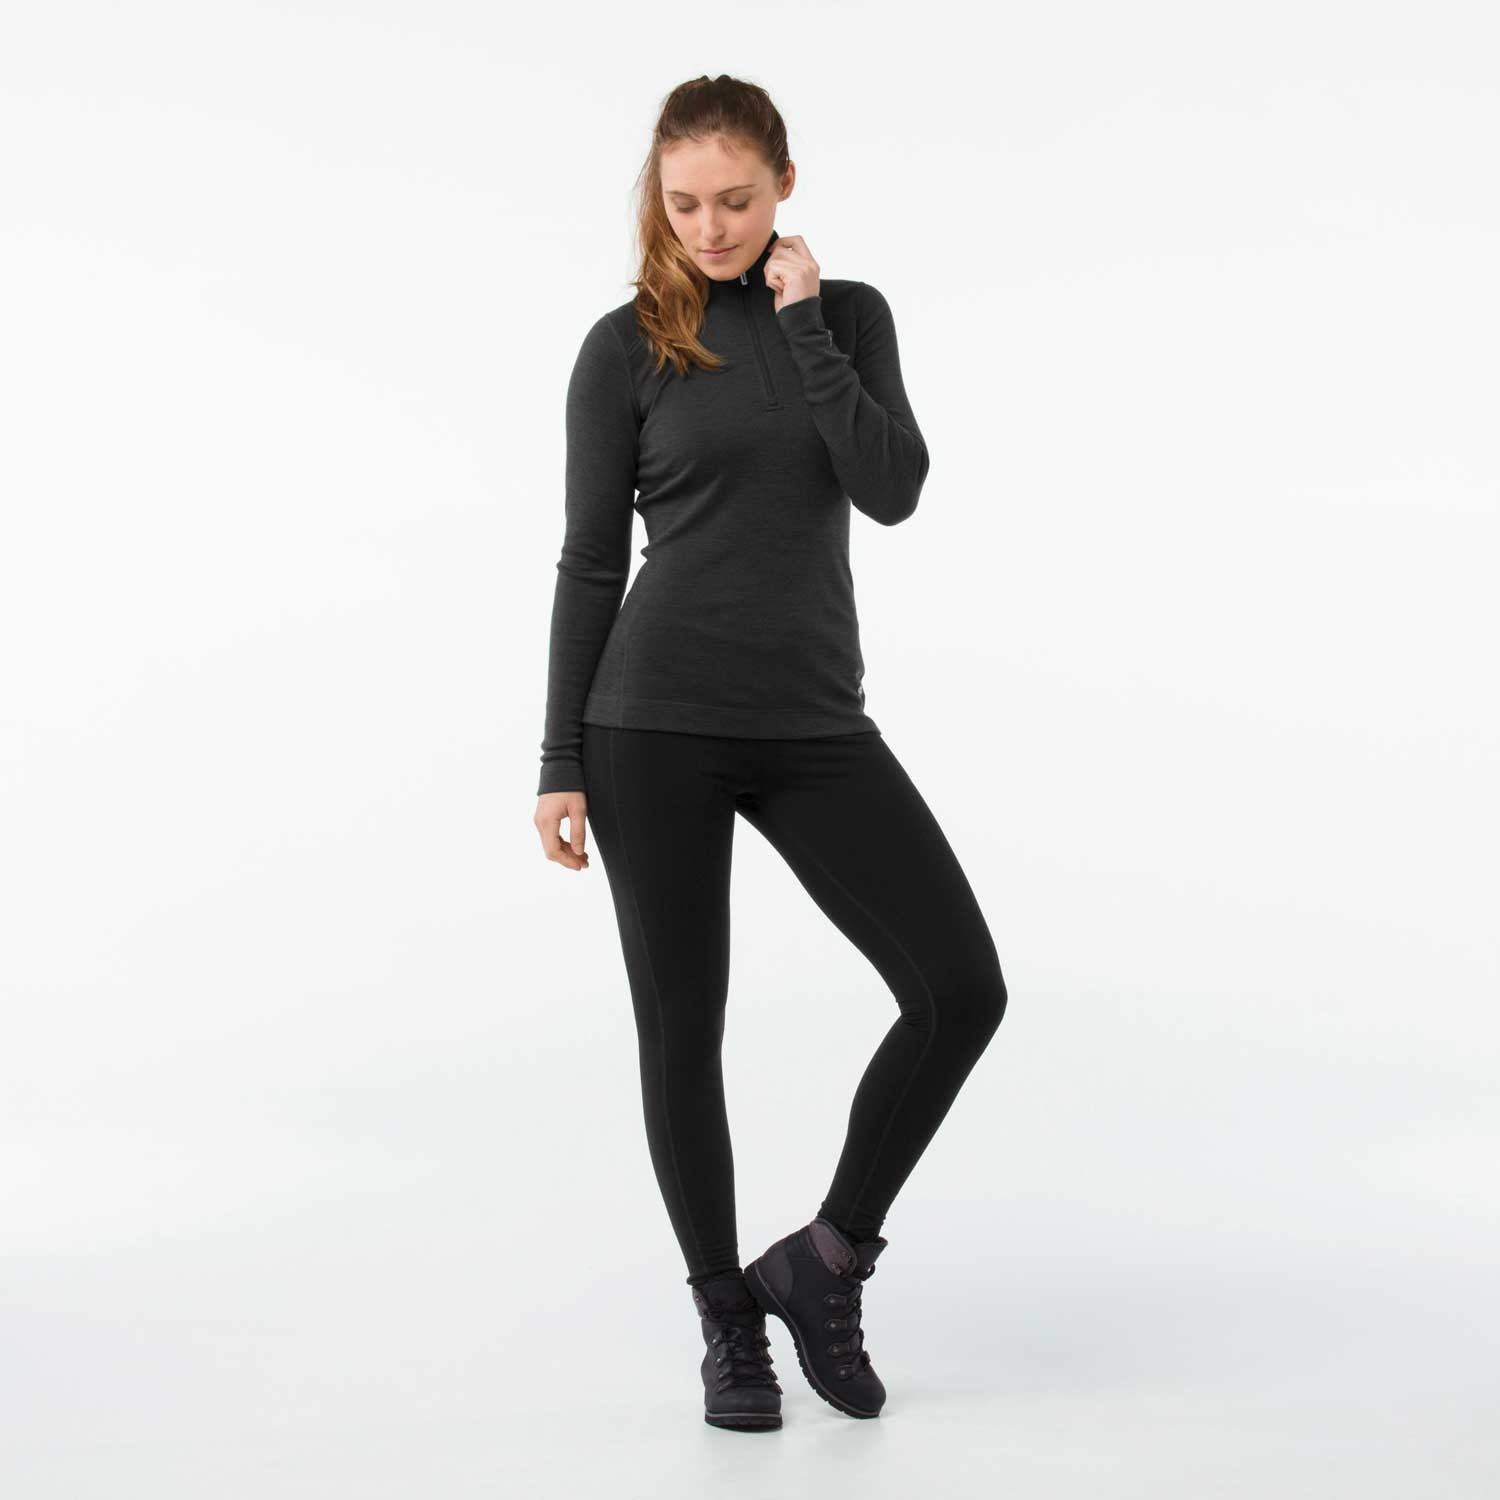 Smartwool Merino 250 Baselayer Women's 1/4 Zip - Charcoal Heather